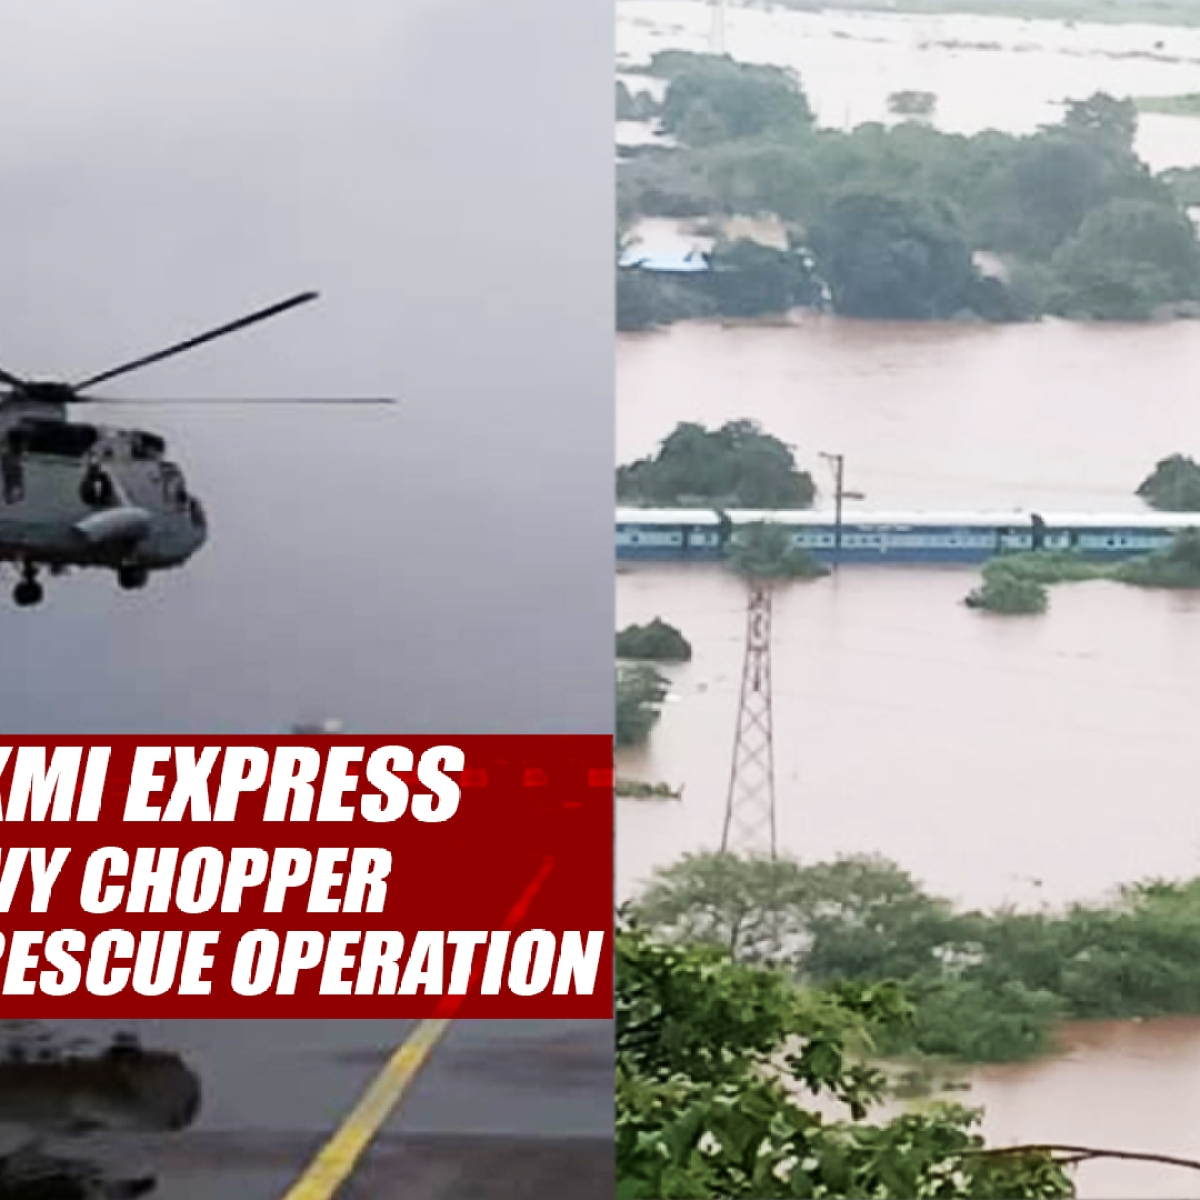 Passengers Stranded On Mahalaxmi Express: NDRF, Navy Chopper Conducting Rescue Operation